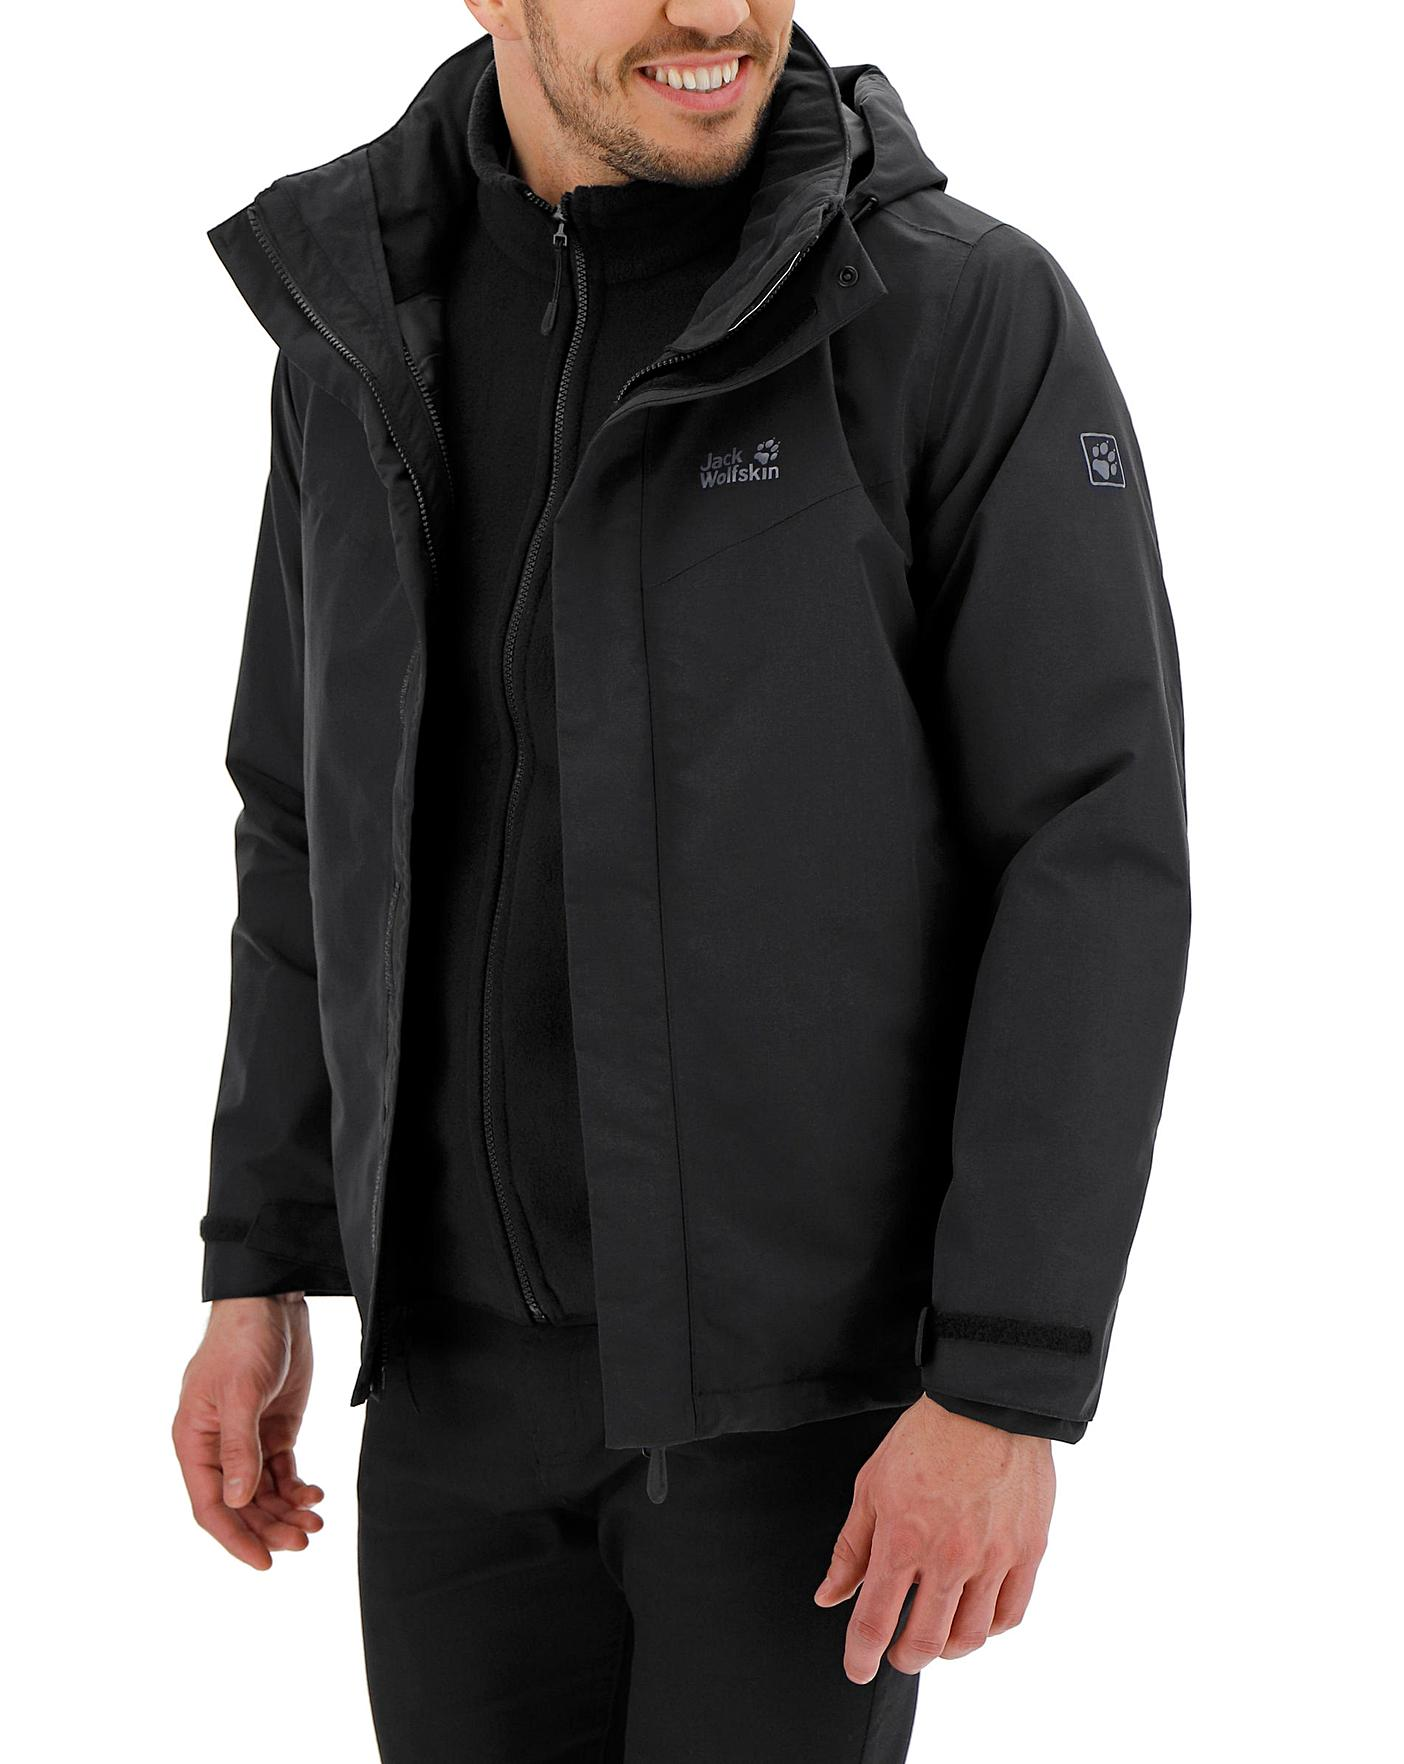 Jack Wolfskin | Boots, Bags, Jackets, Hats | Sports Direct